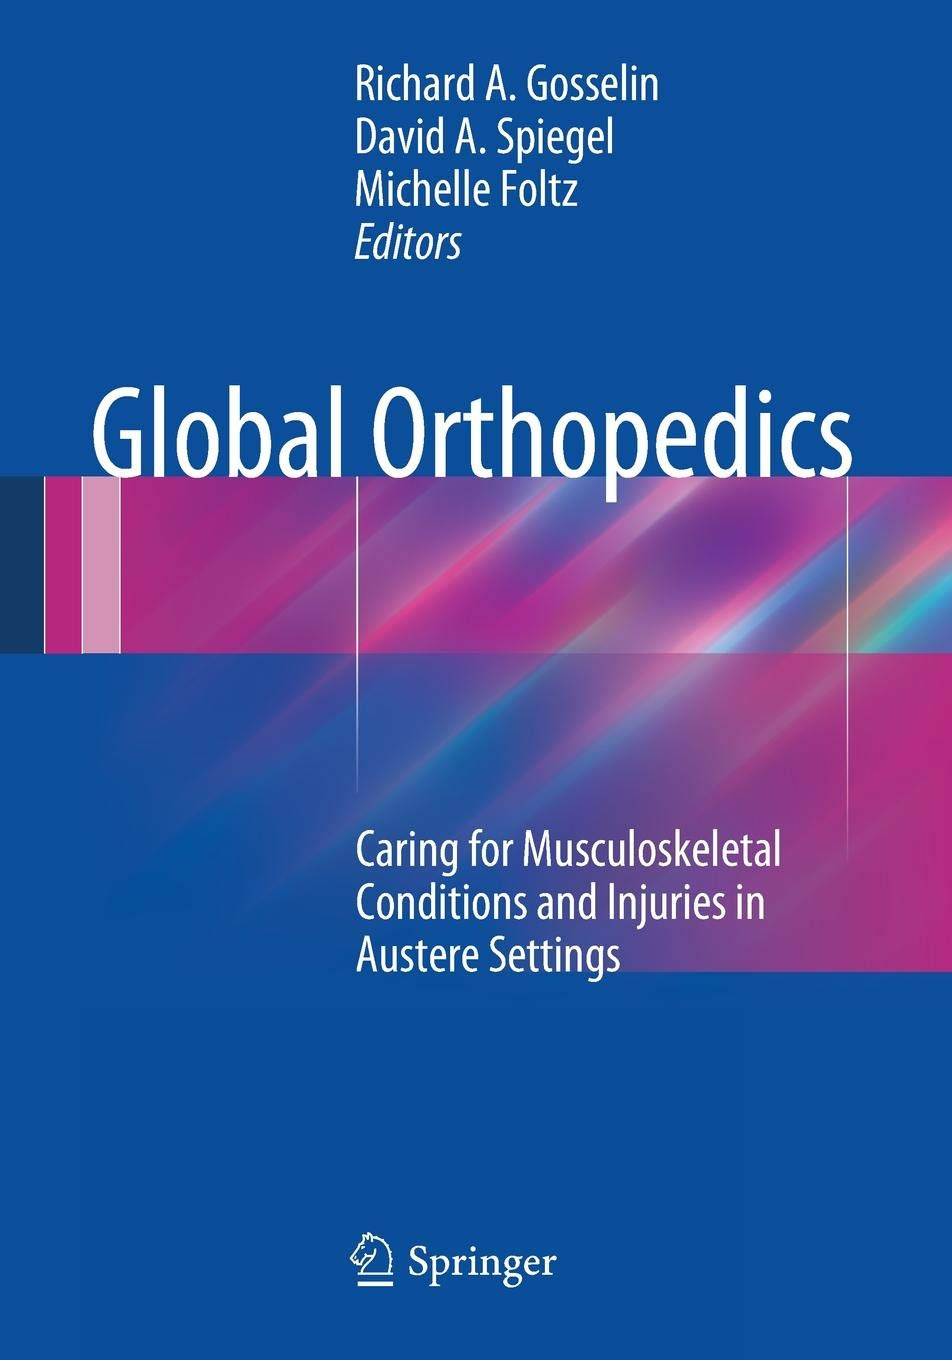 Global Orthopedics: Caring for Musculoskeletal Conditions and Injuries in Austere Settings by Springer